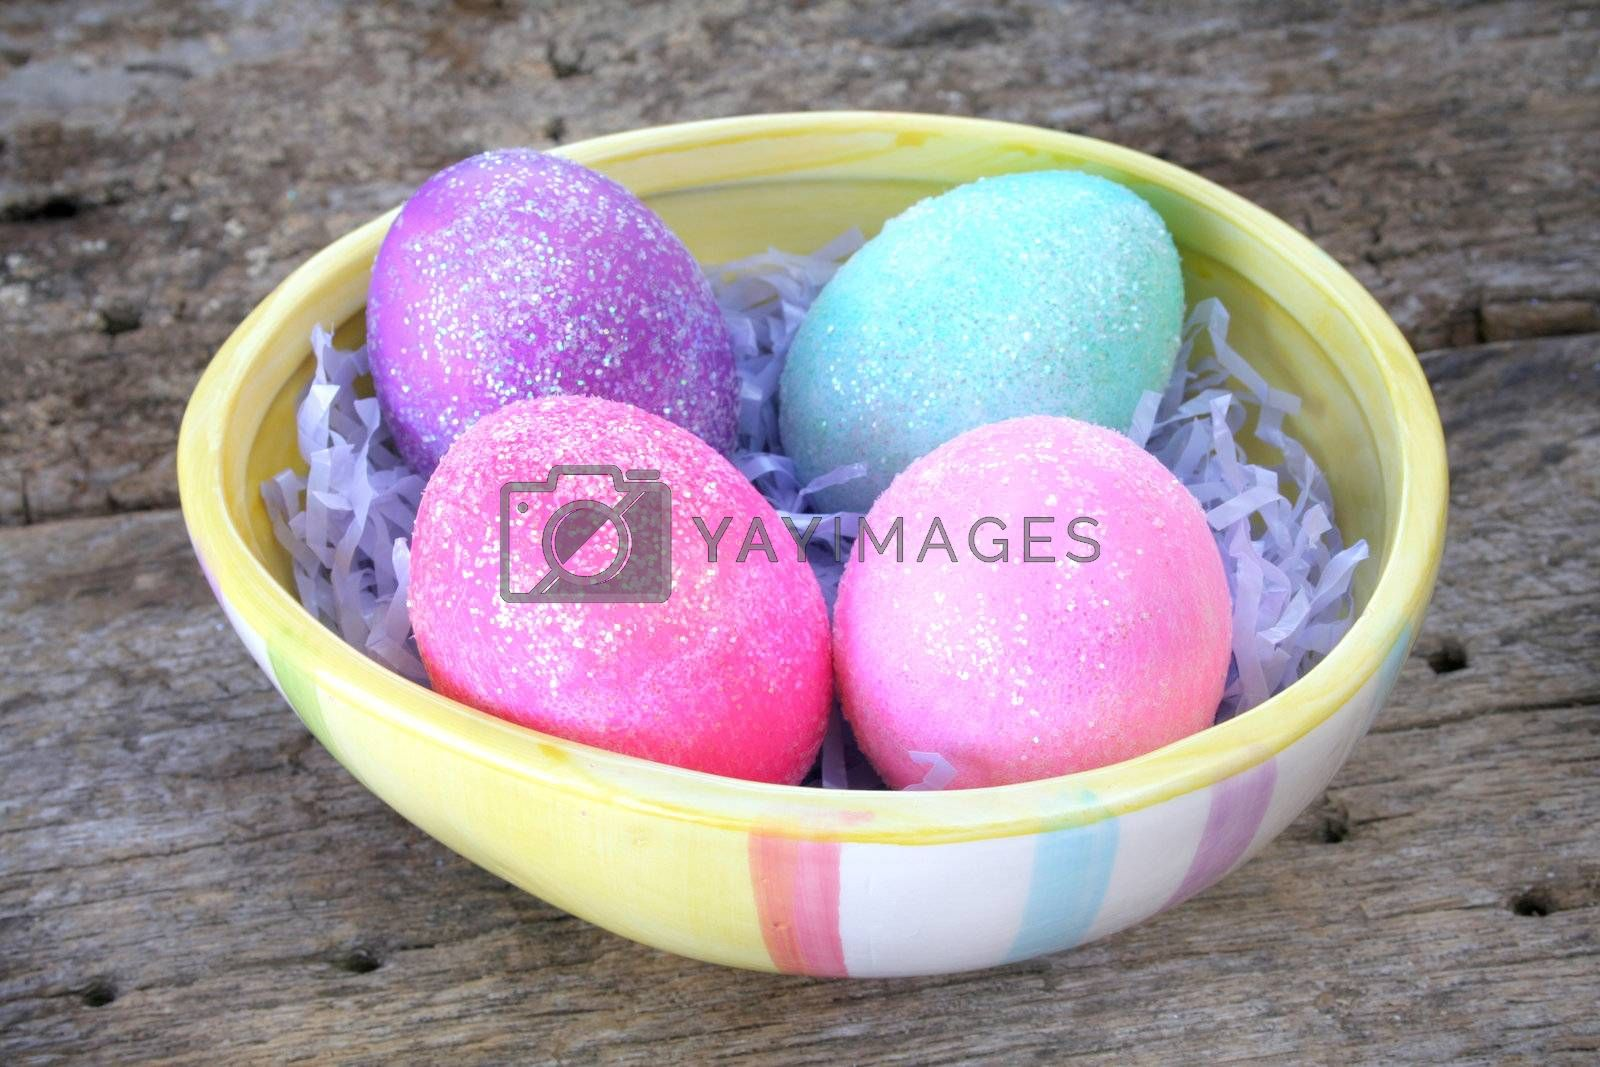 Egg shaped dish holding colorful Easter eggs.